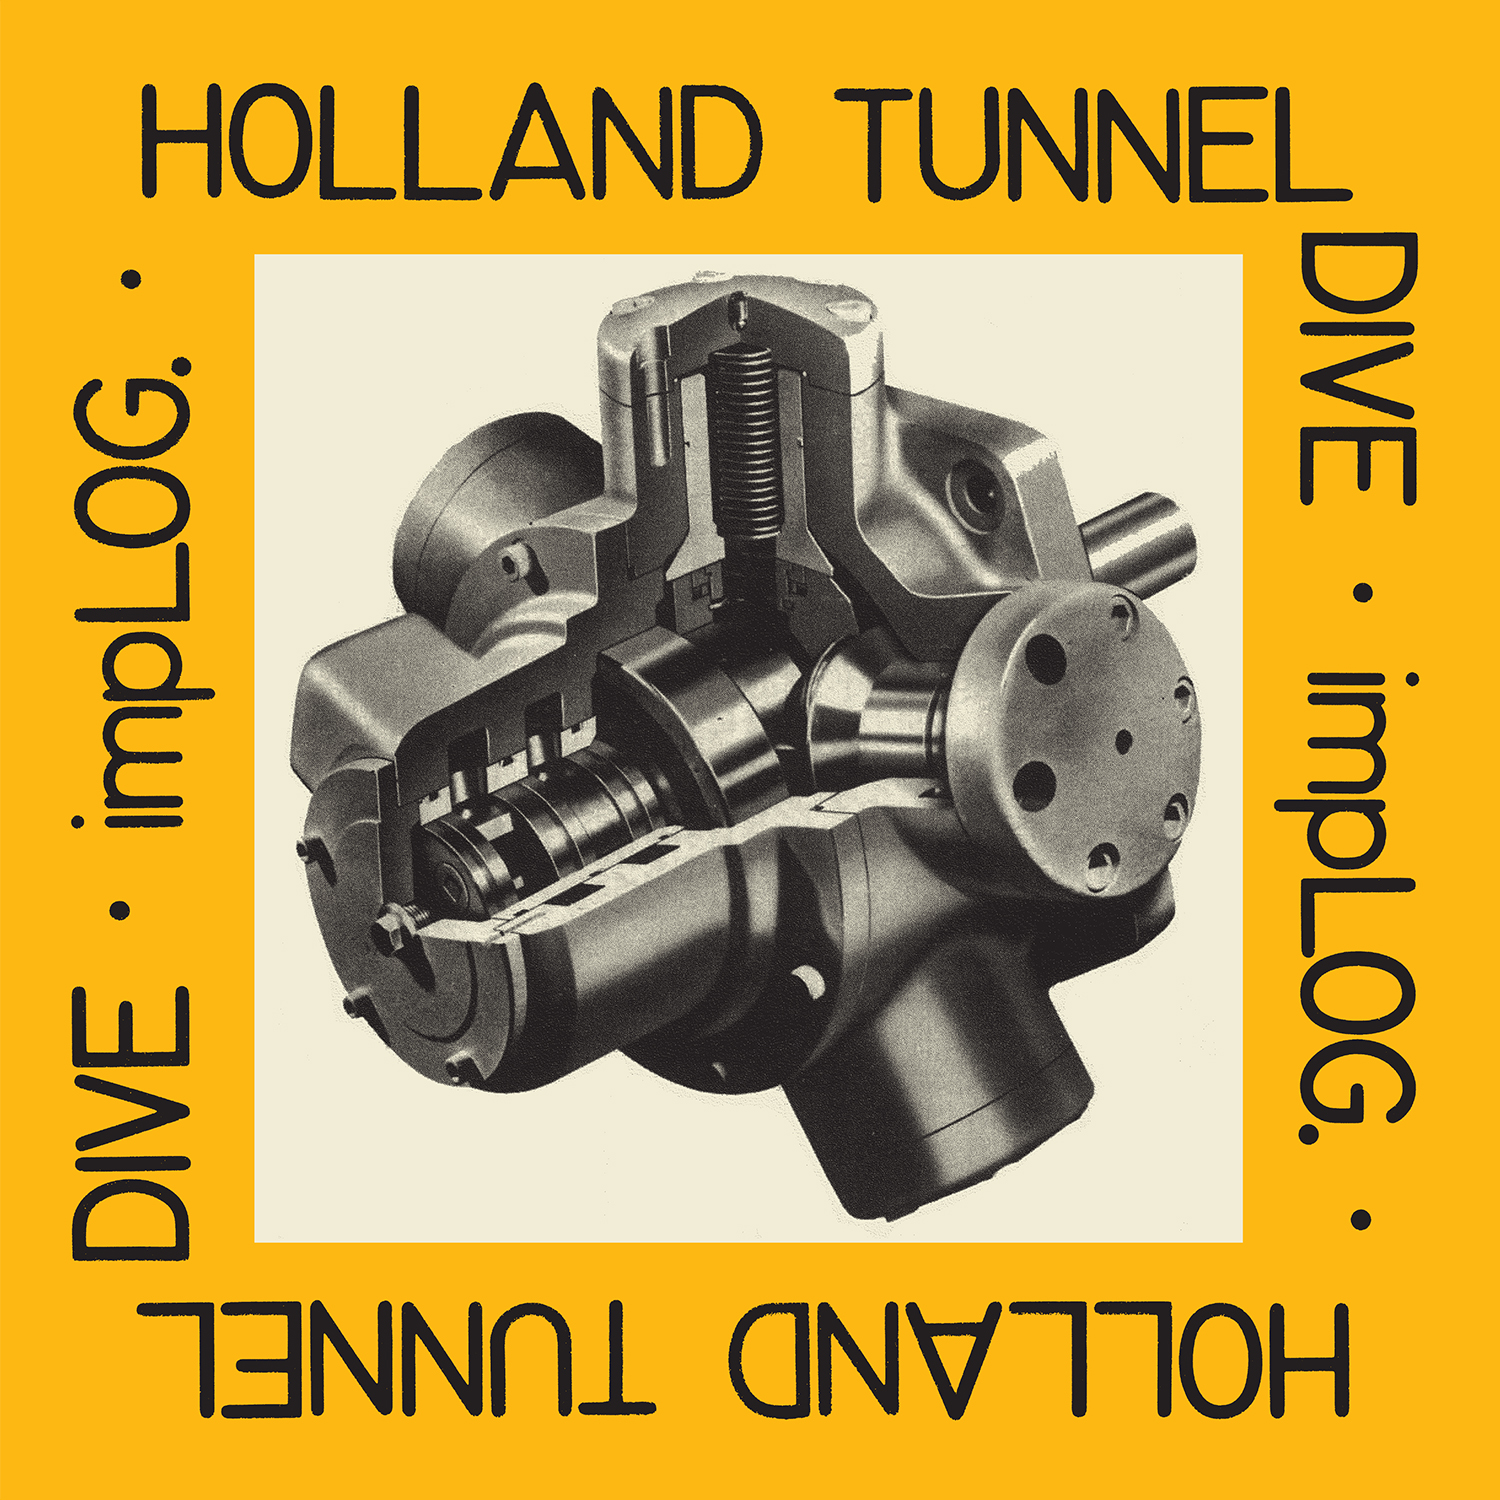 impLOG holland tunnel dive